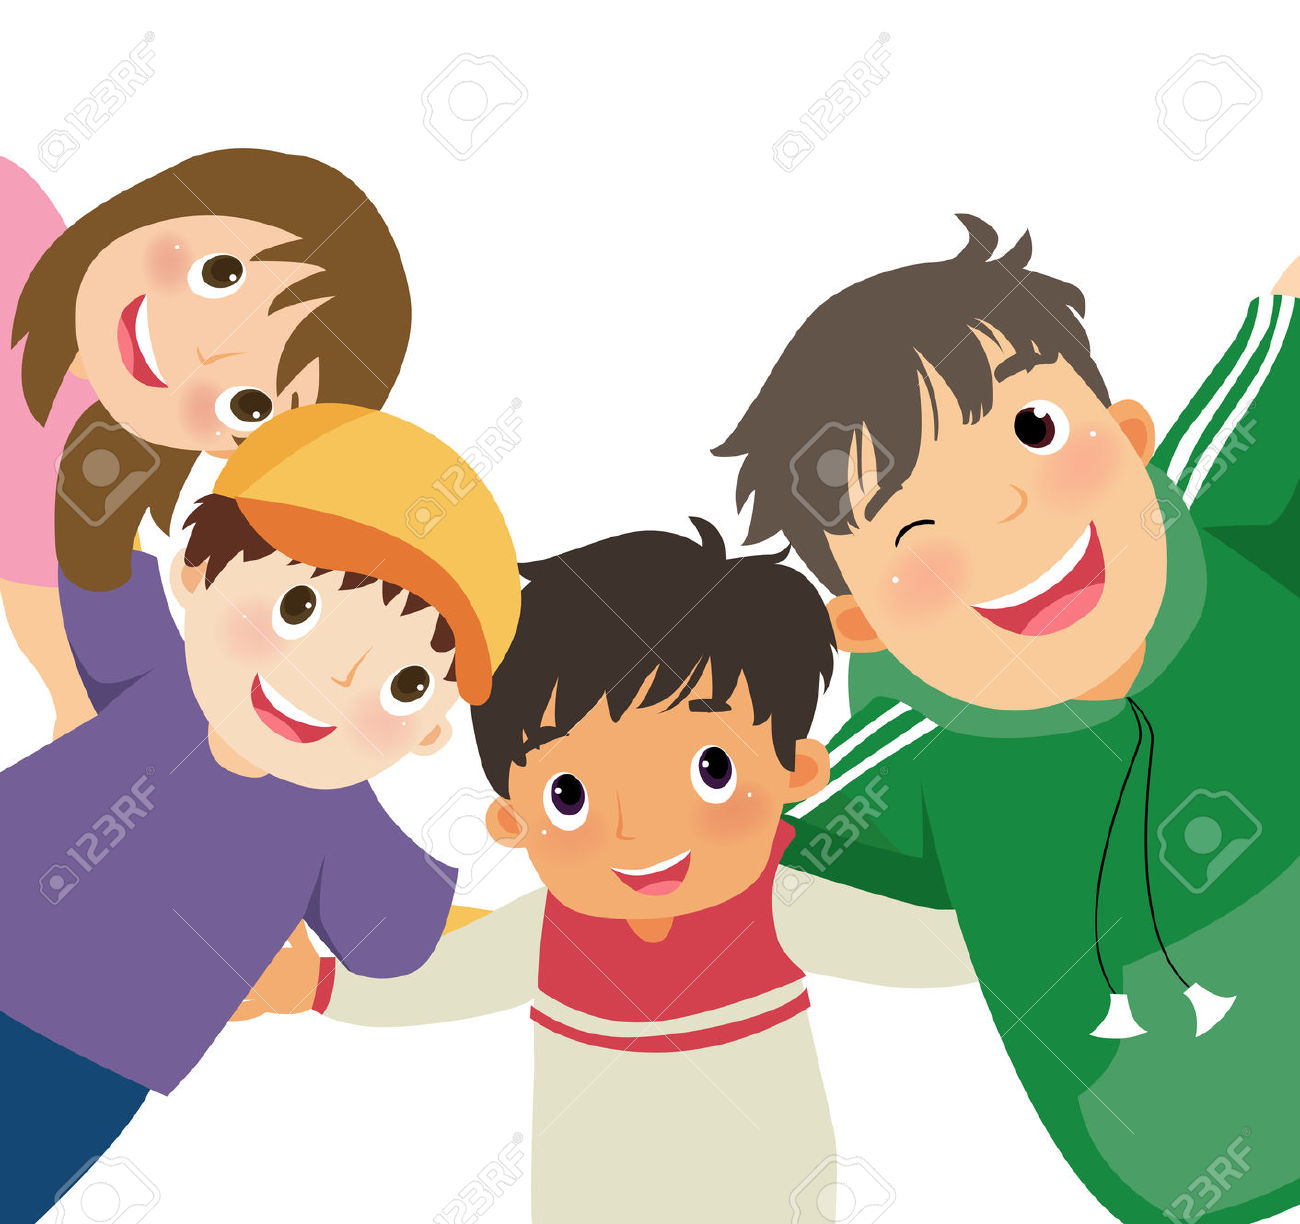 Girl and boy friendship clipart - ClipartFest clip